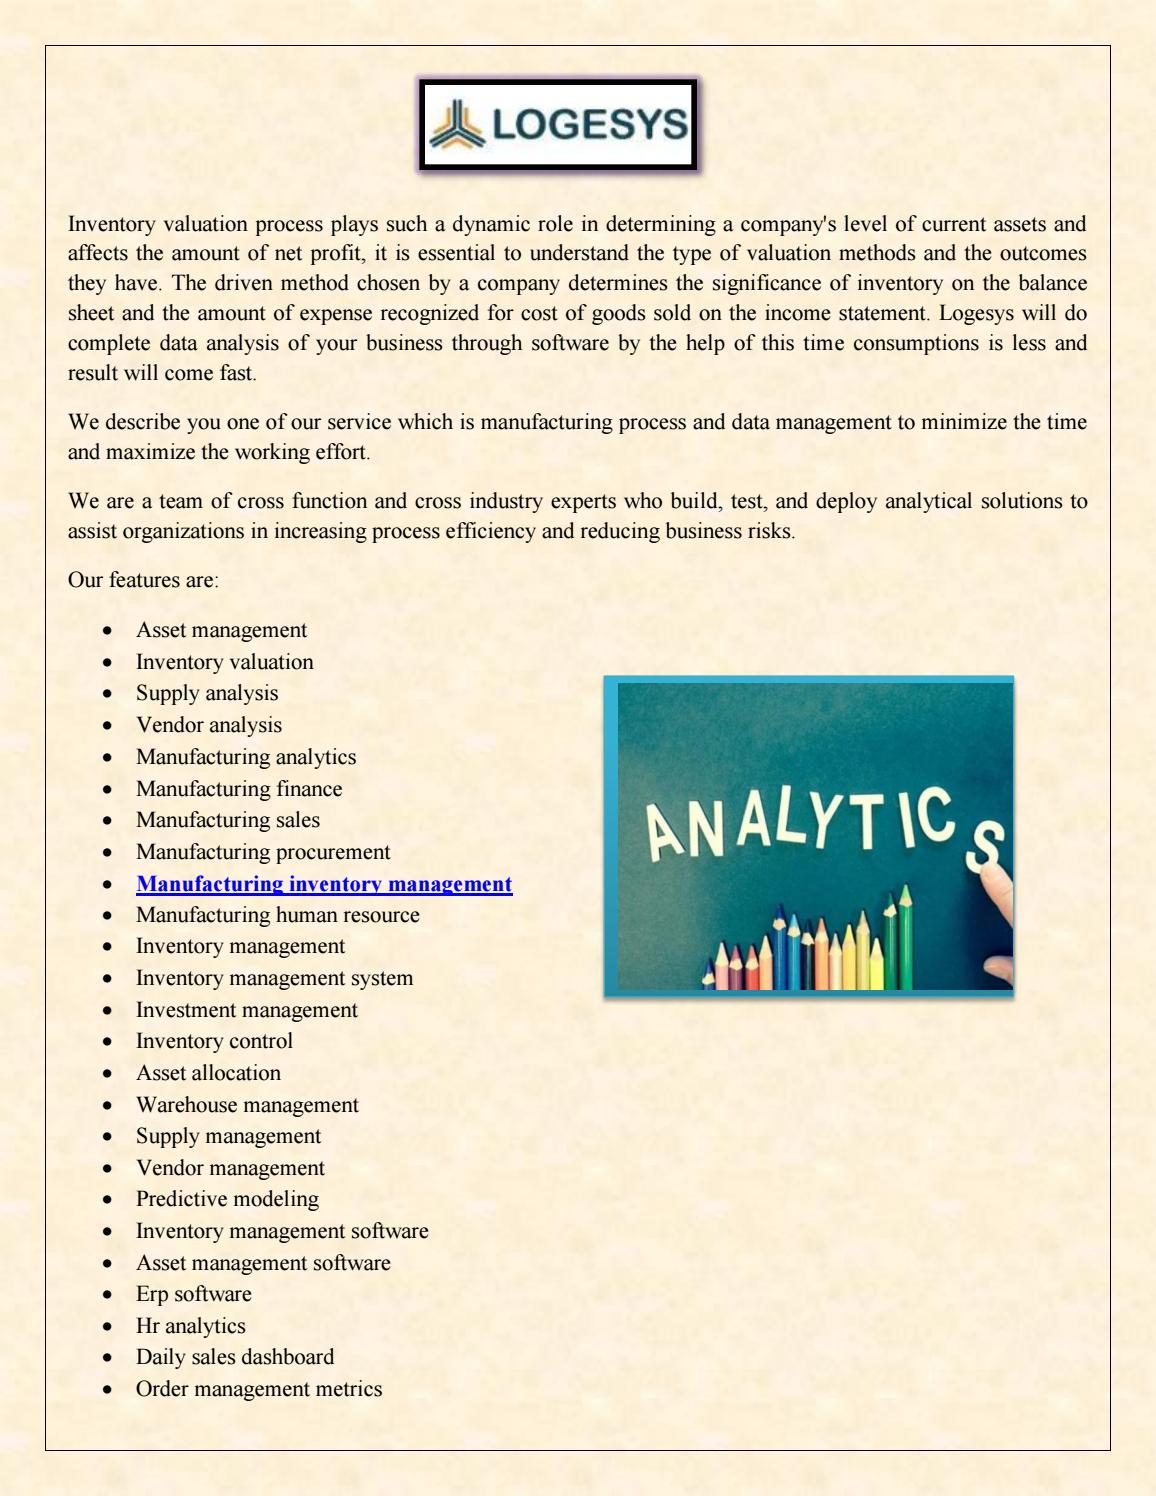 Manufacturing Inventory Management, Sales and Analytics Services by